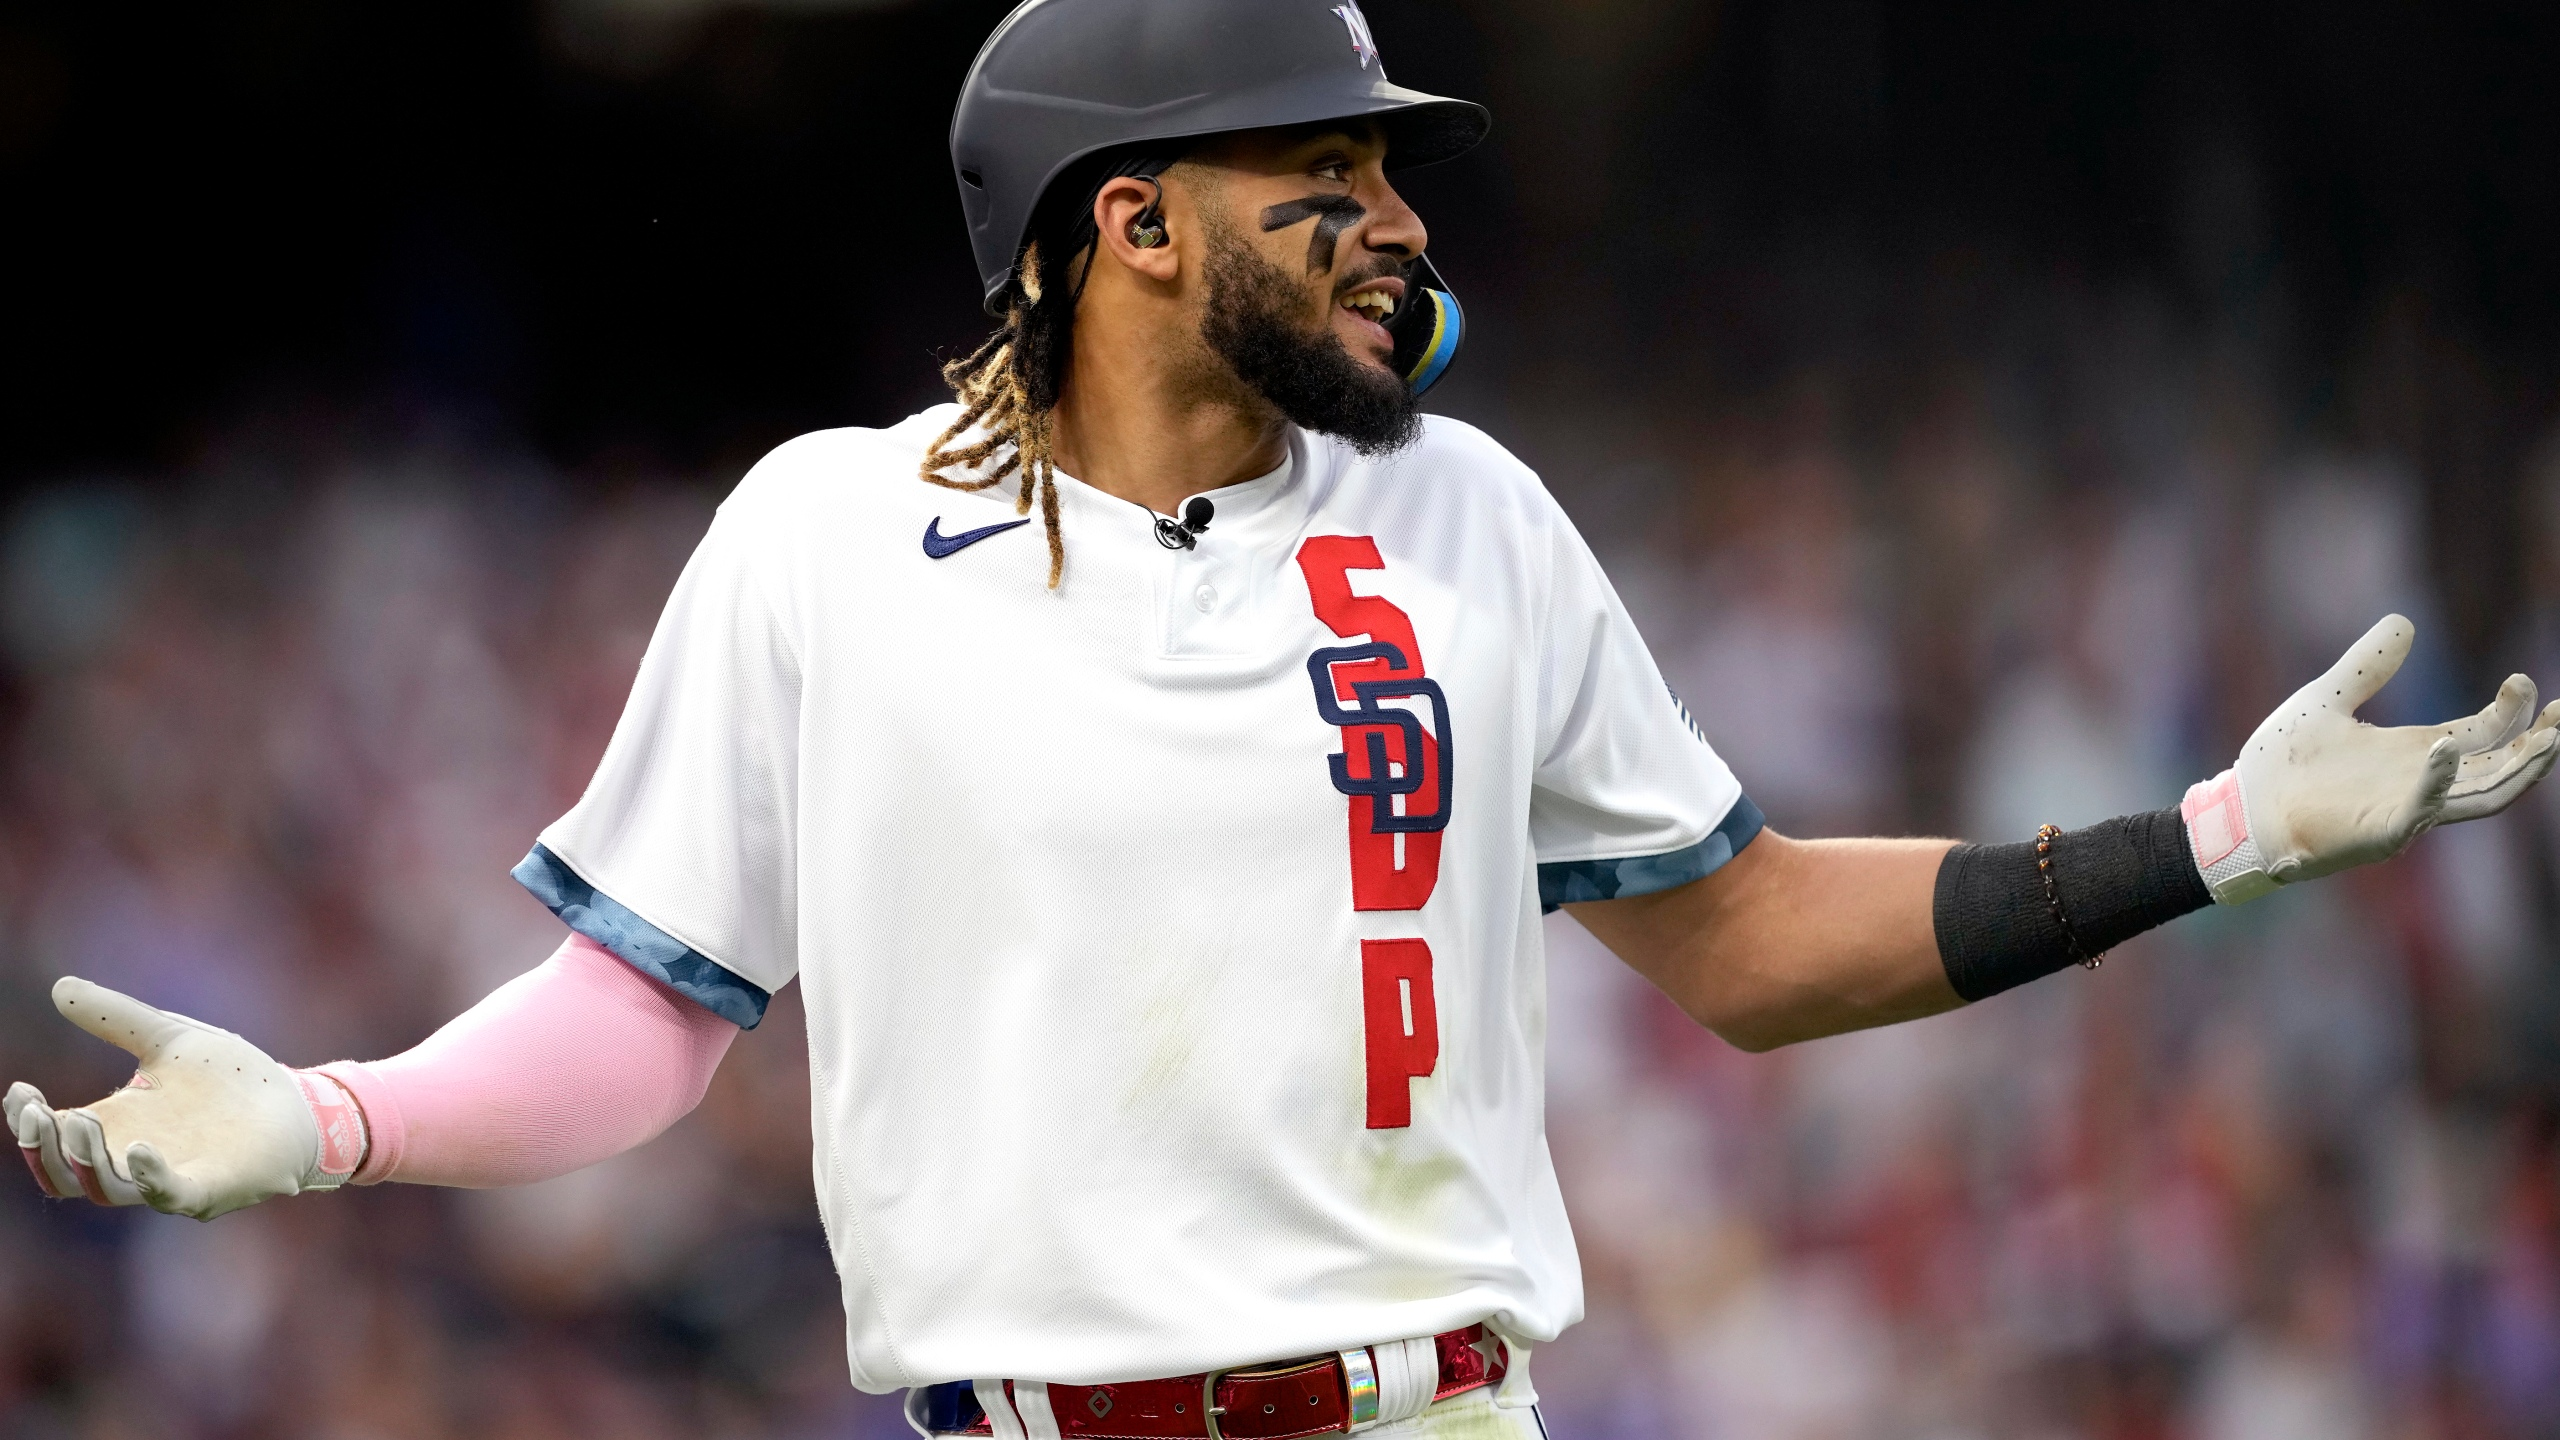 National League's Fernando Tatis Jr., of the San Diego Padres, reacts after flying out during the third inning of the MLB All-Star baseball game, Tuesday, July 13, 2021, in Denver. (AP Photo/David Zalubowski)